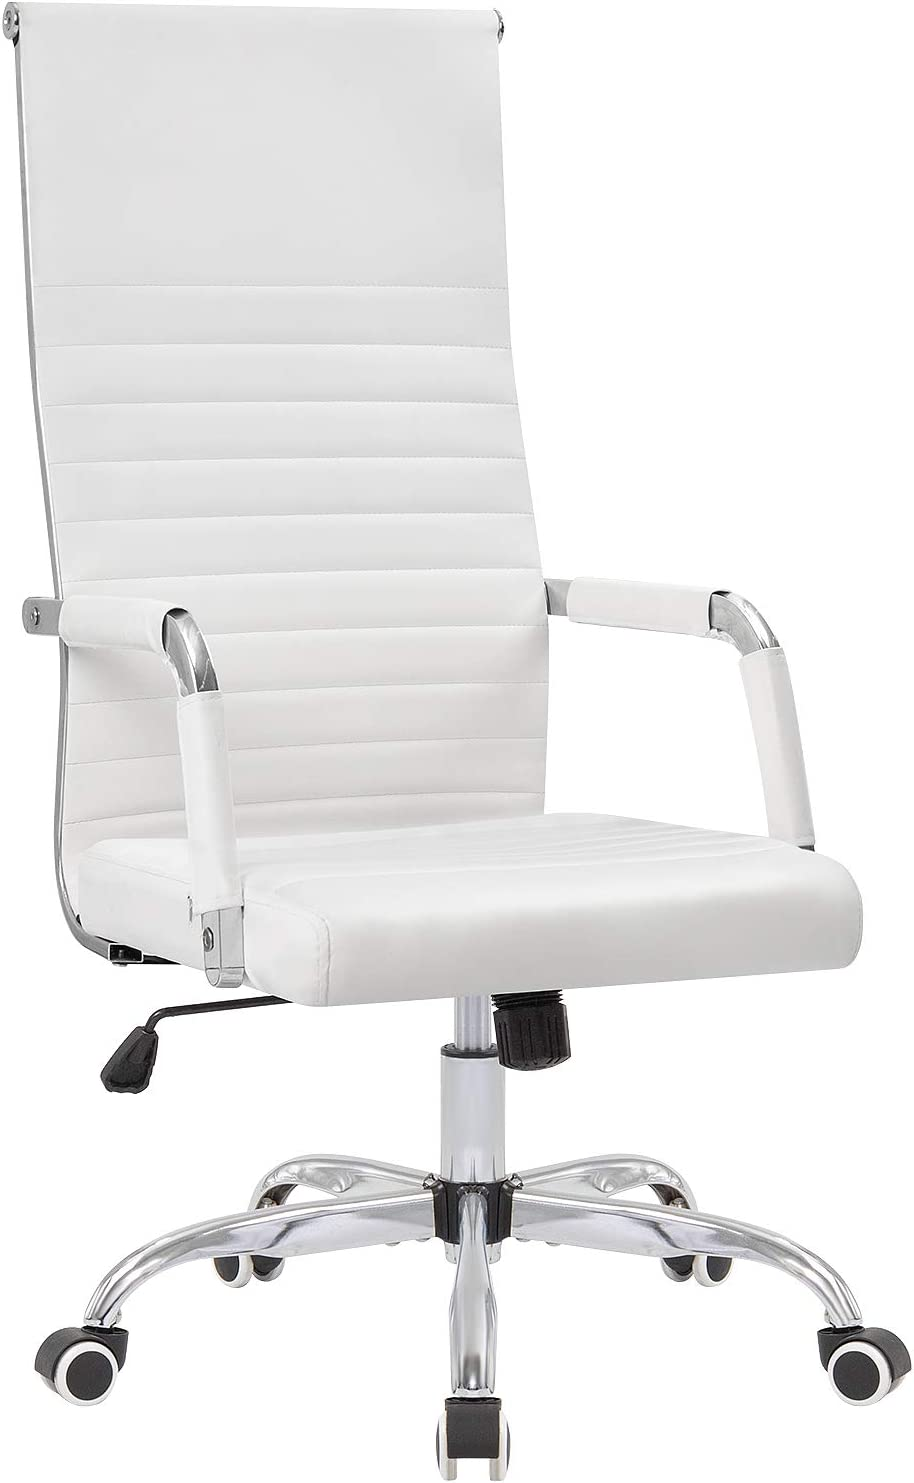 KaiMeng Ribbed Office Chair High Back PU Leather Chair Adjustable Swivel Task Chair with Armrest for Conference Study Leisure (White)